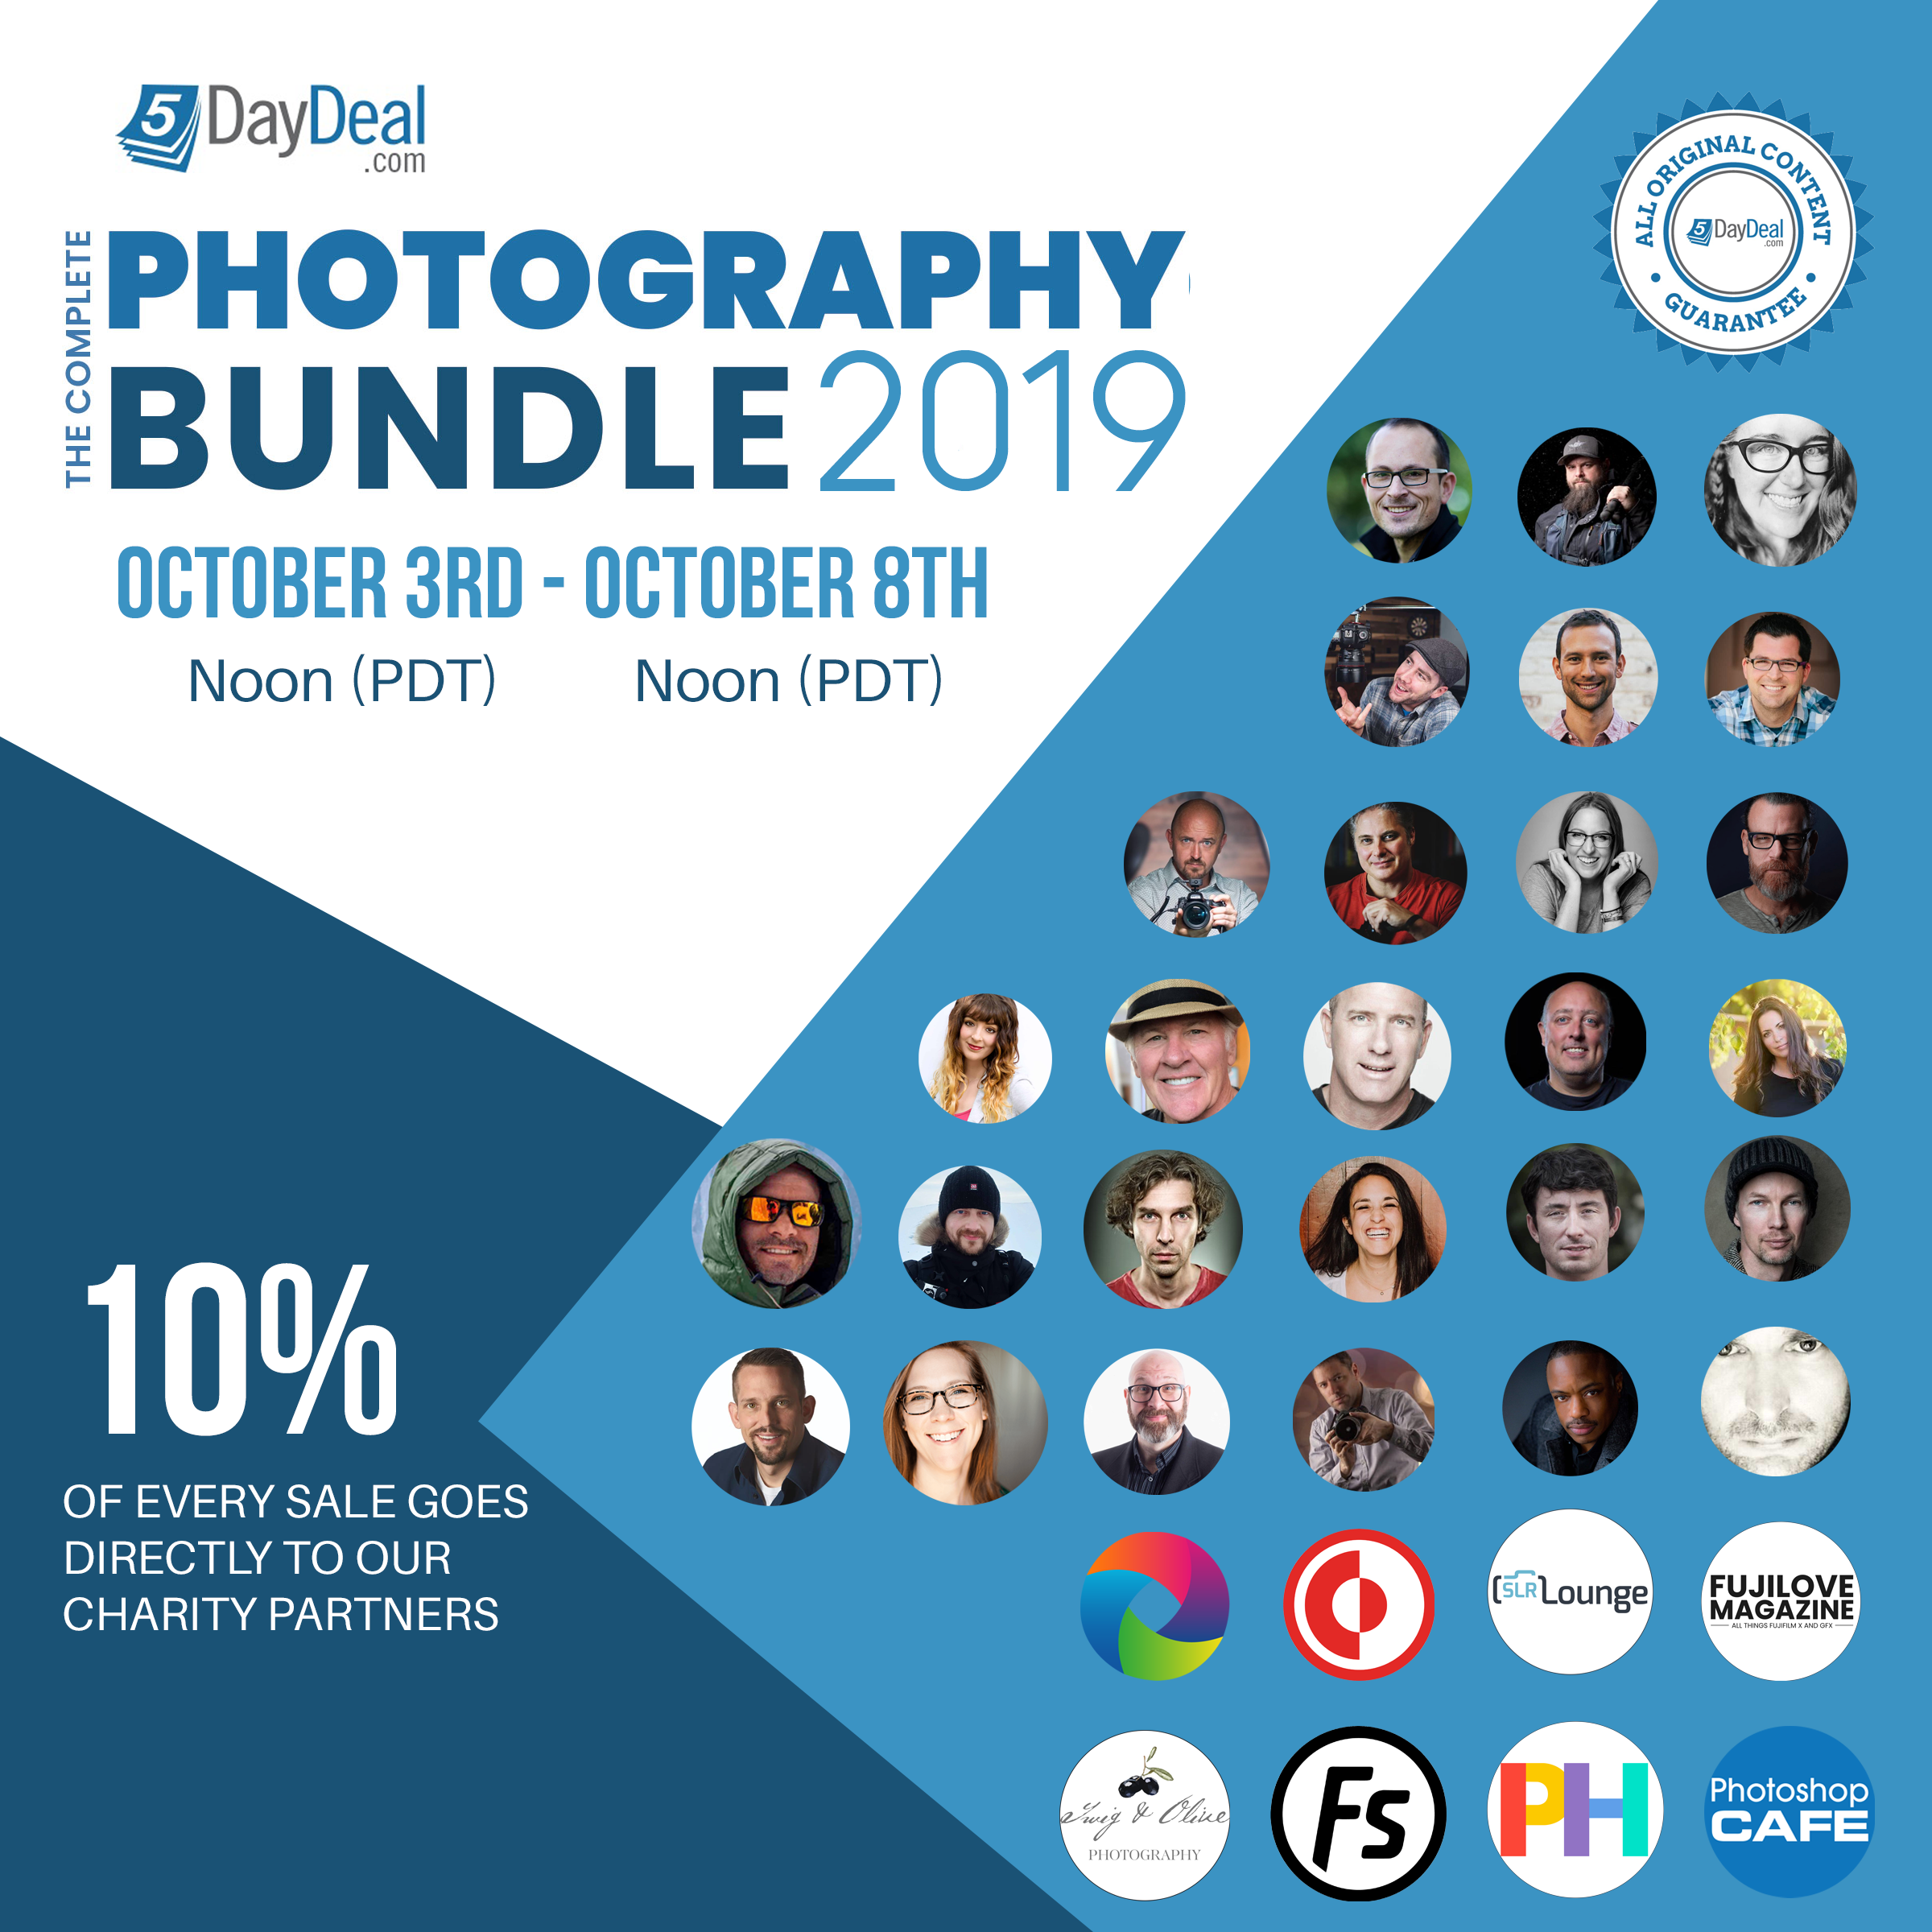 Save 97% When You Buy the Complete Photography Bundle 2019 ($89)